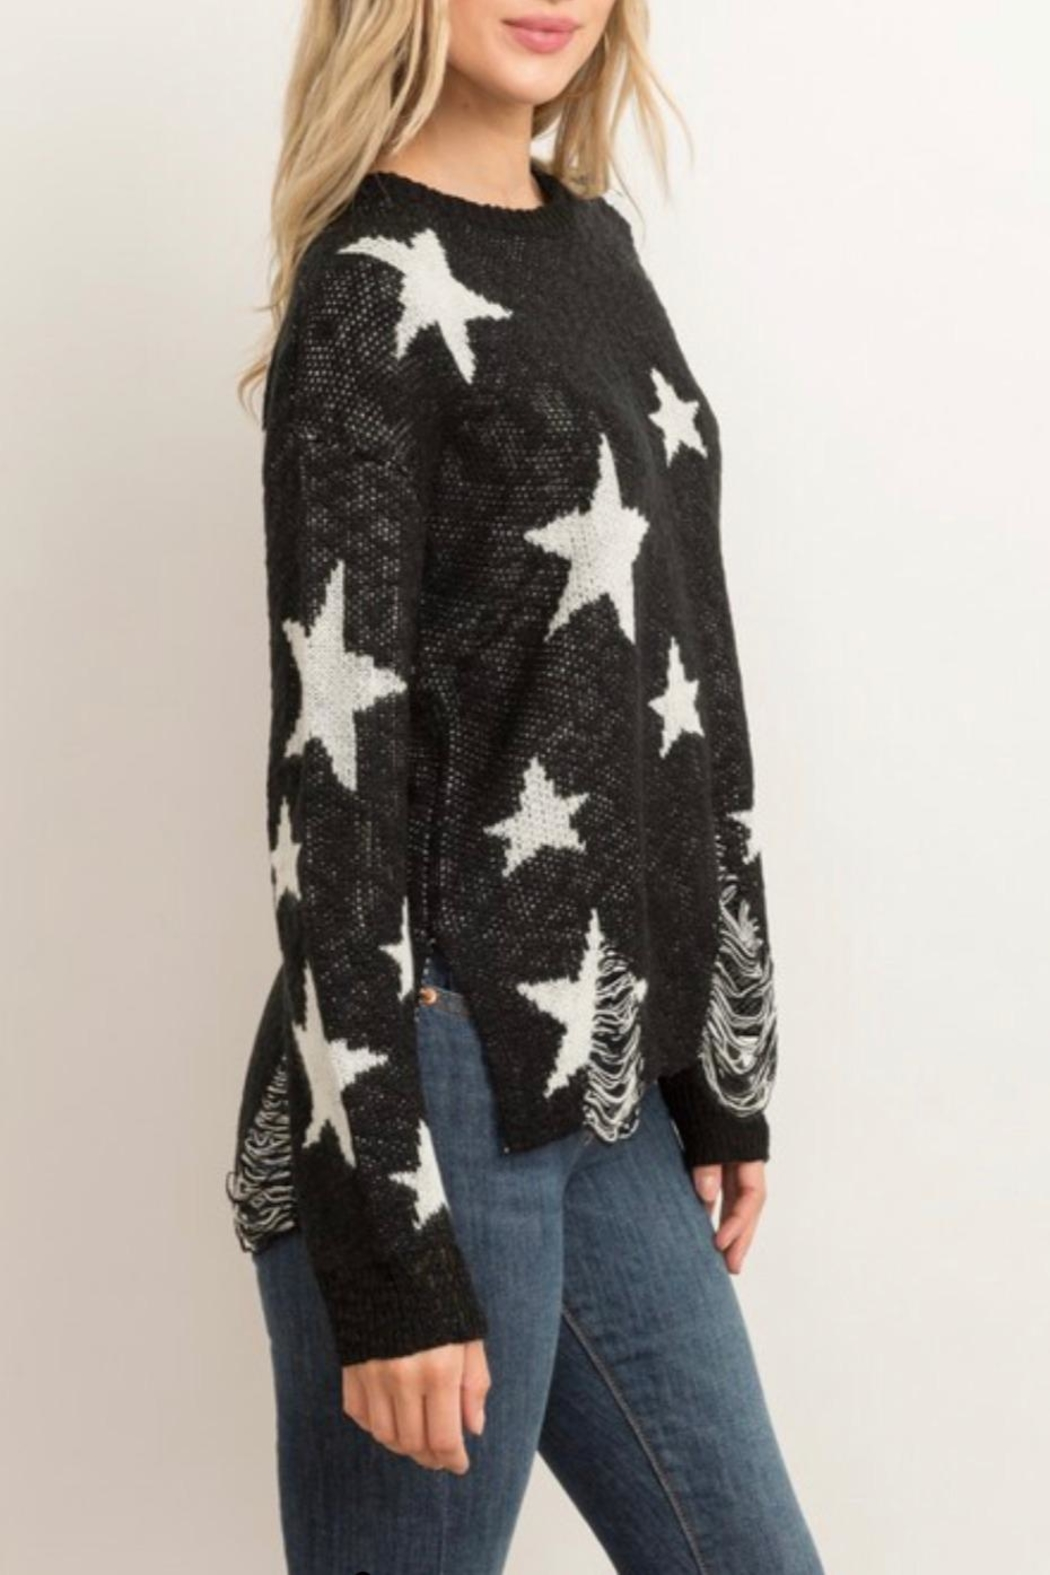 Hem & Thread Distressed Star Sweater - Side Cropped Image